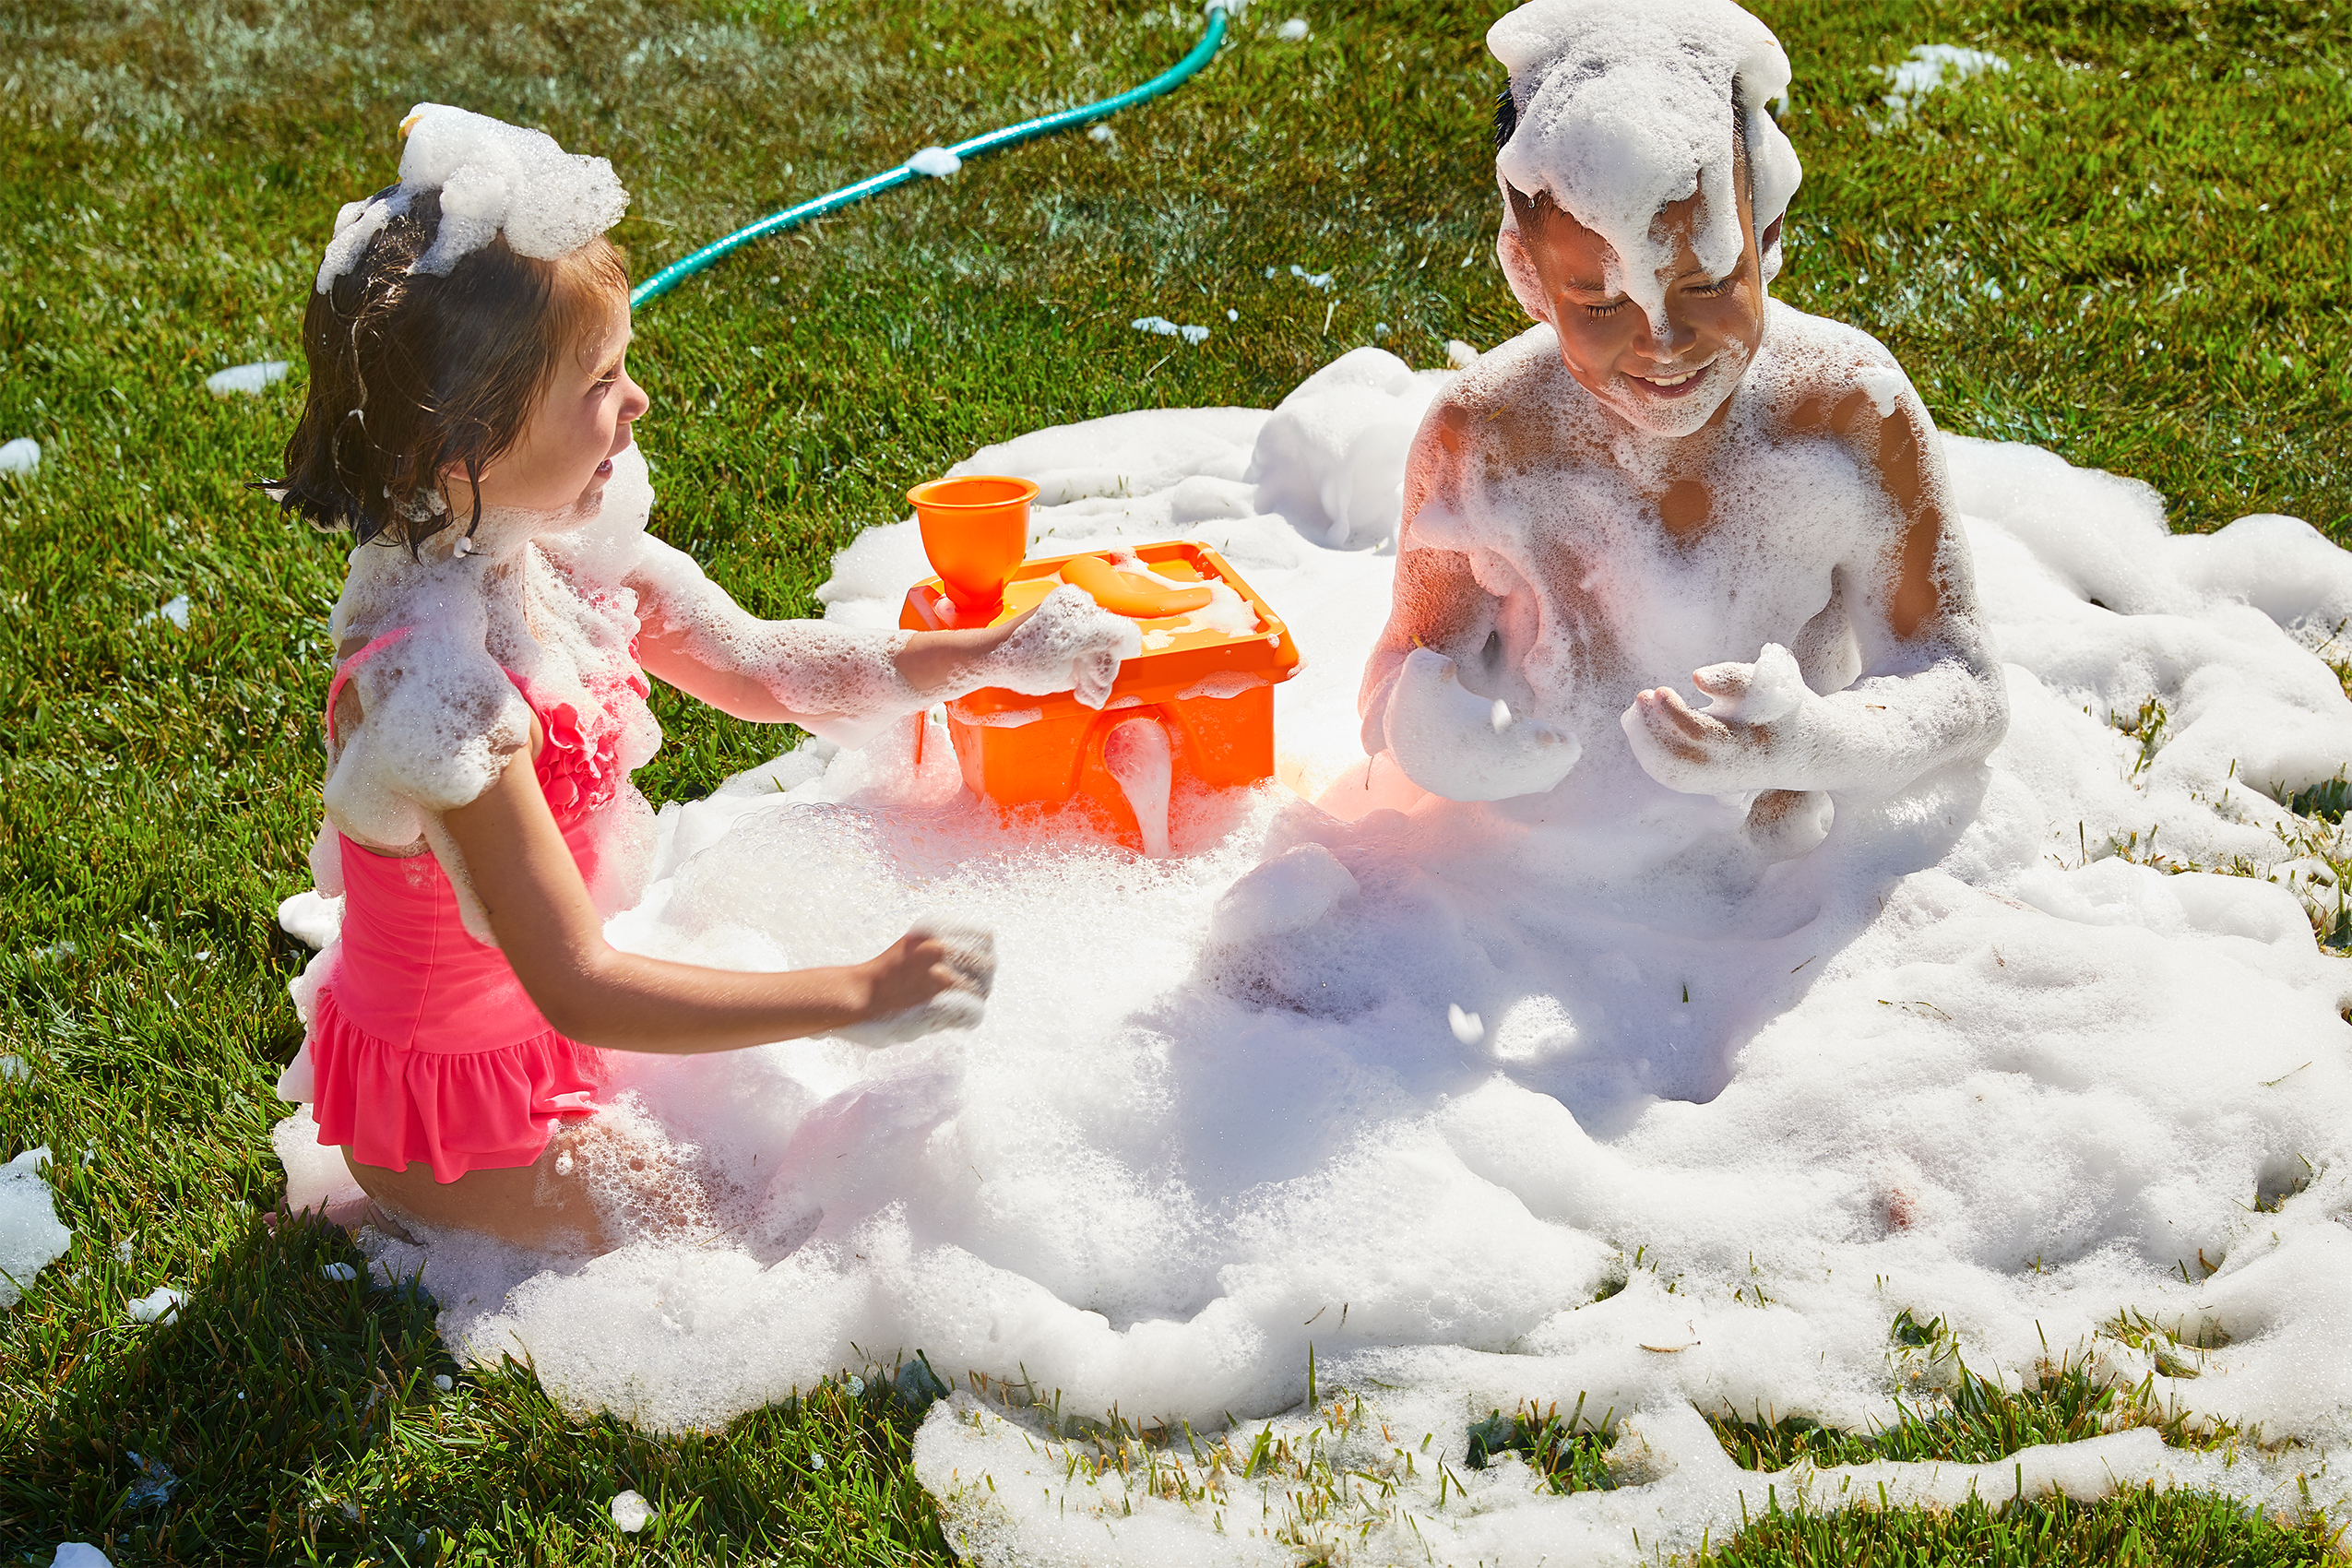 Wham-O Foam Party™ Foam Party Factory on sale now and part of the Foam Party™ Foam Party Factory of products.